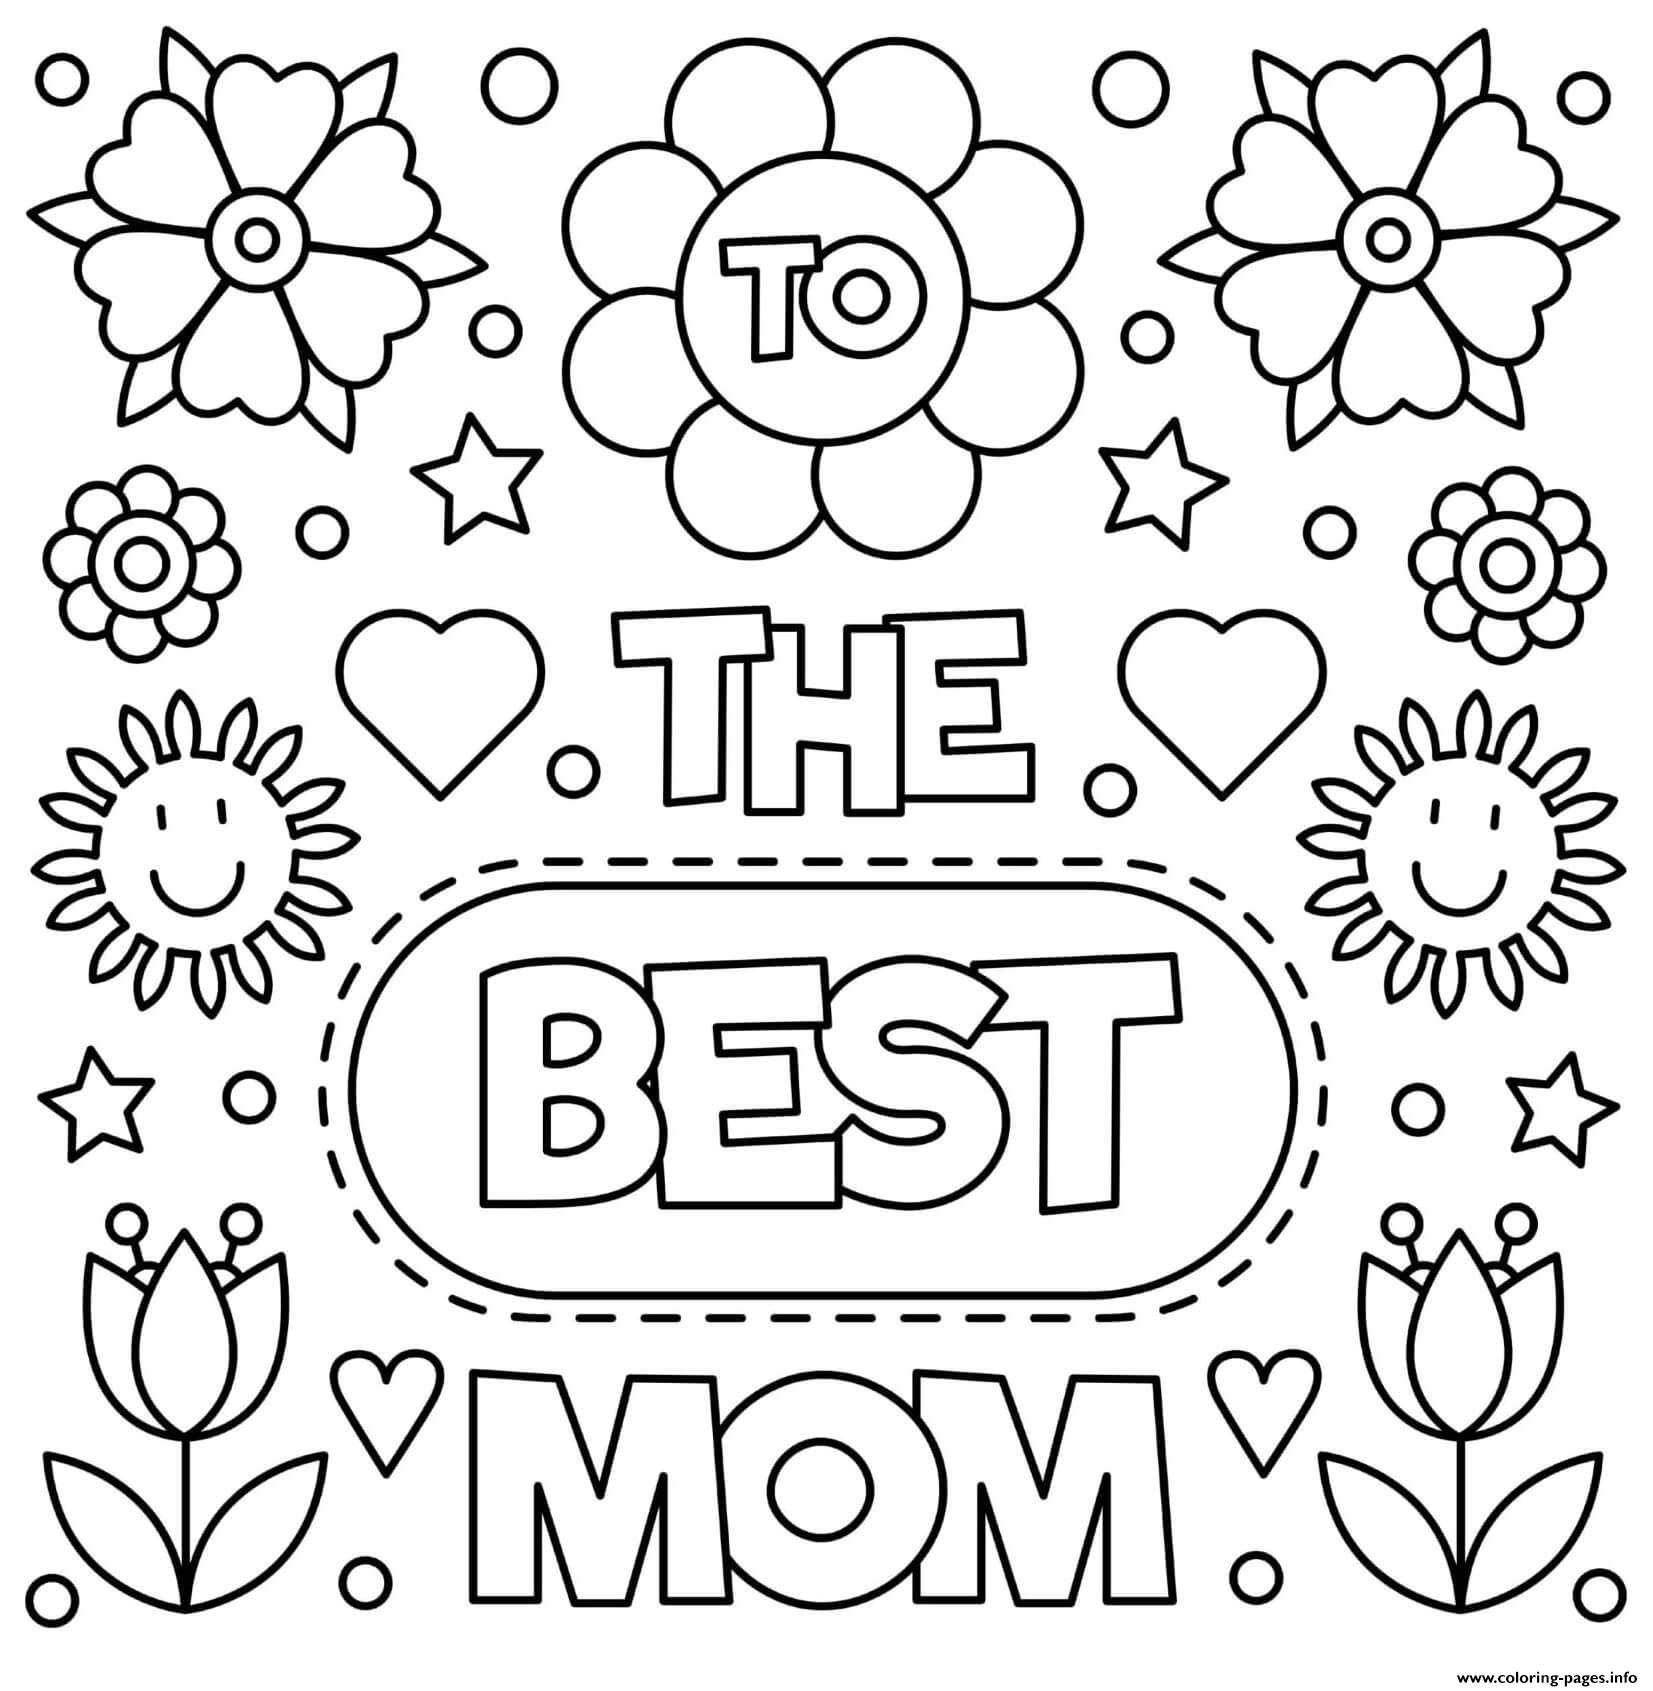 Mothers Day To The Best Mom Flowers Sign Coloring Pages Printable